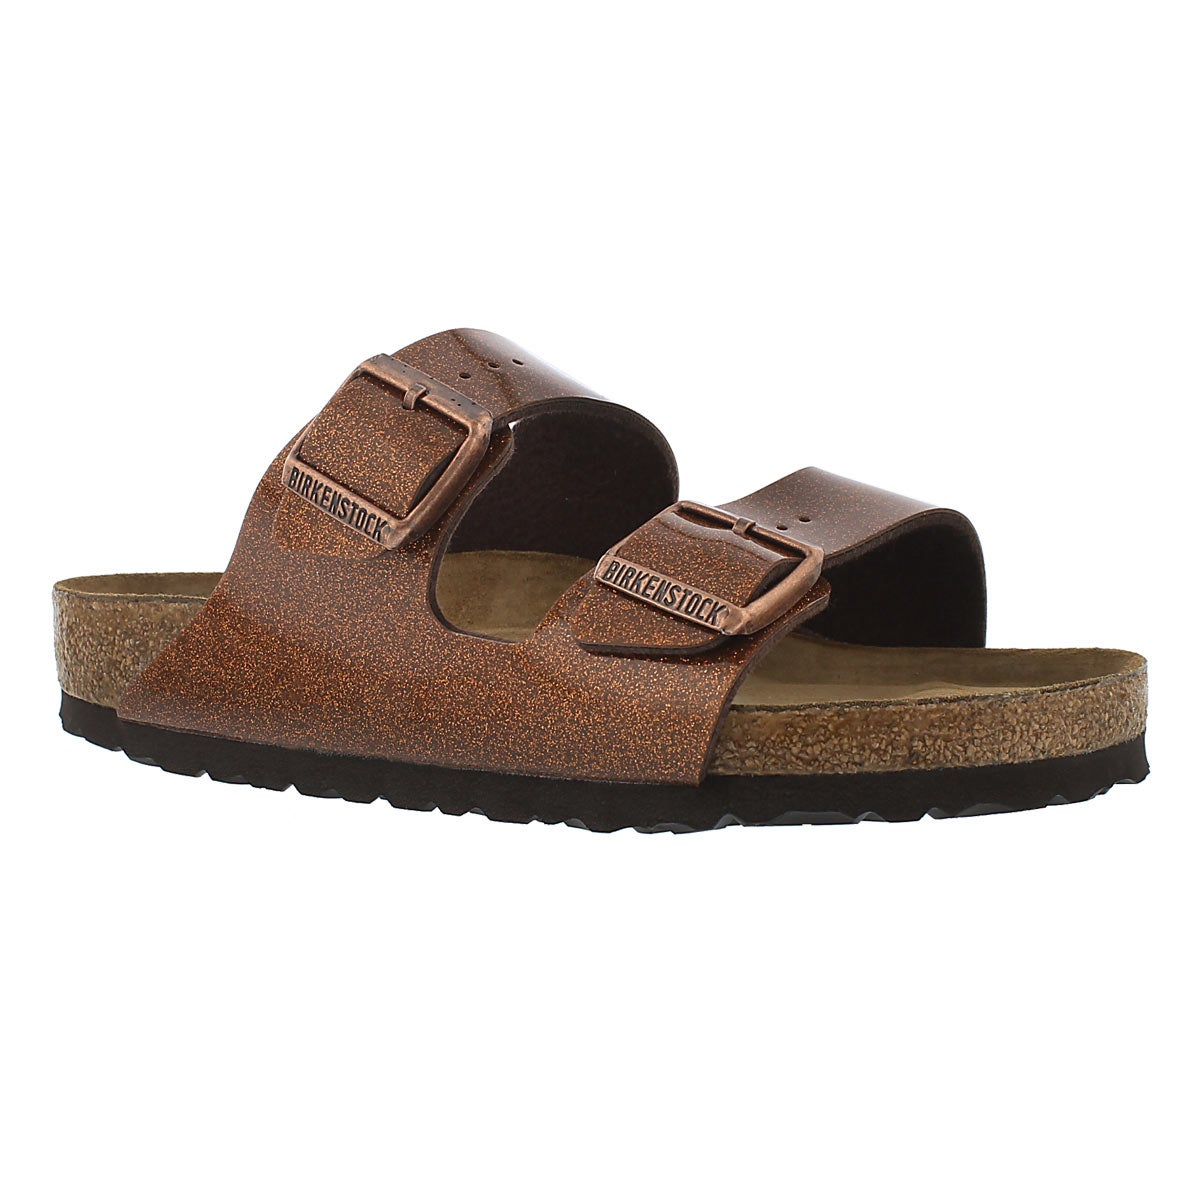 Women's ARIZONA SF magic galaxy bronze sandals